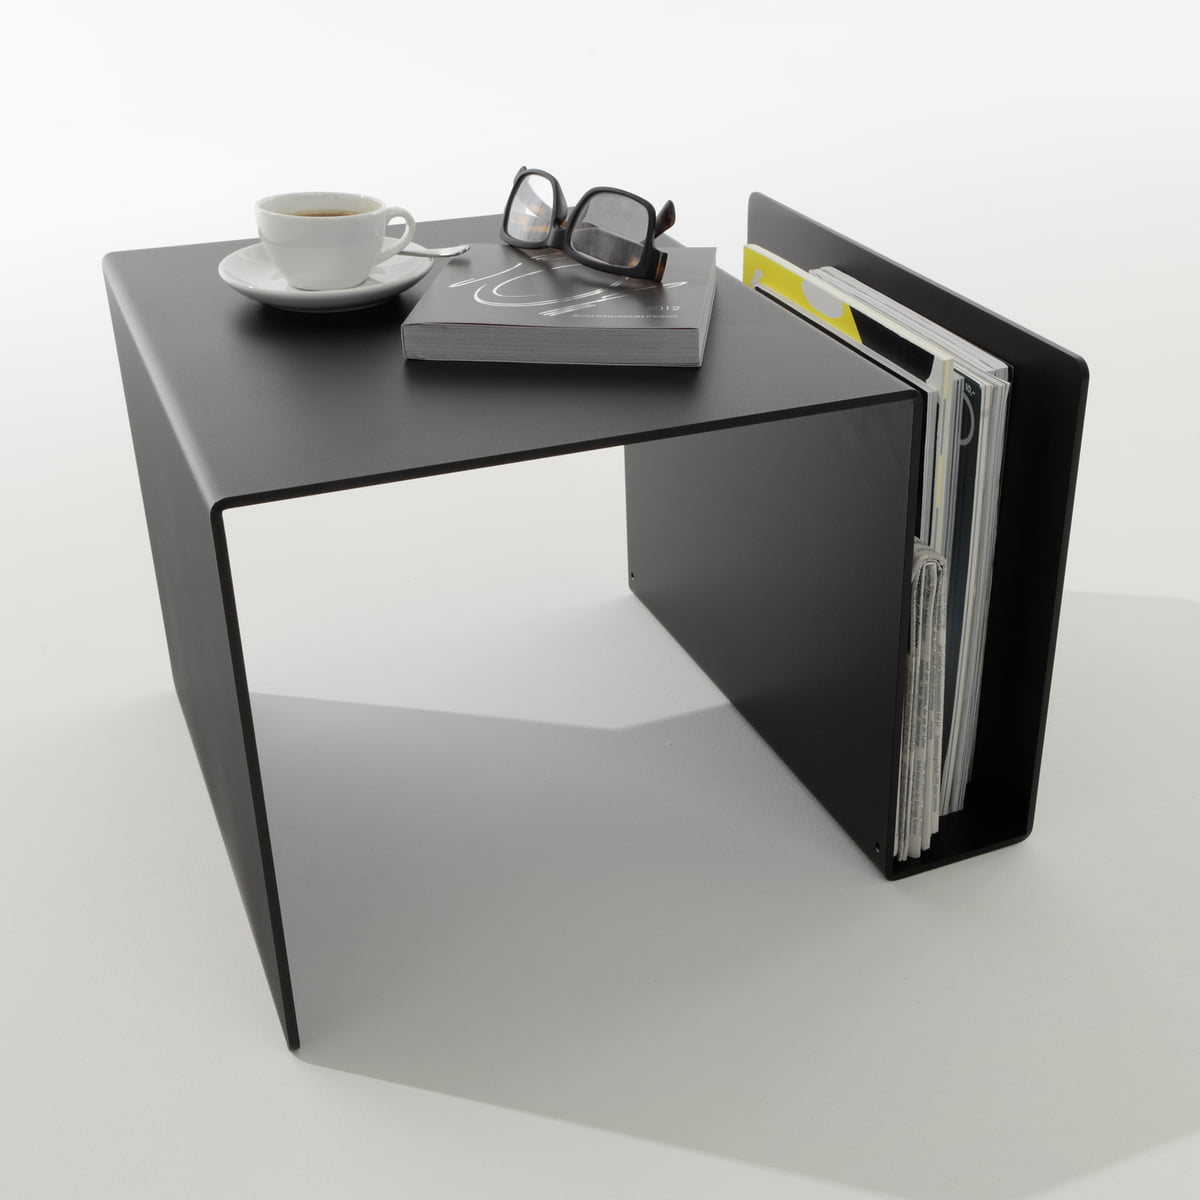 furniture multifunction. Furniture Multifunction I